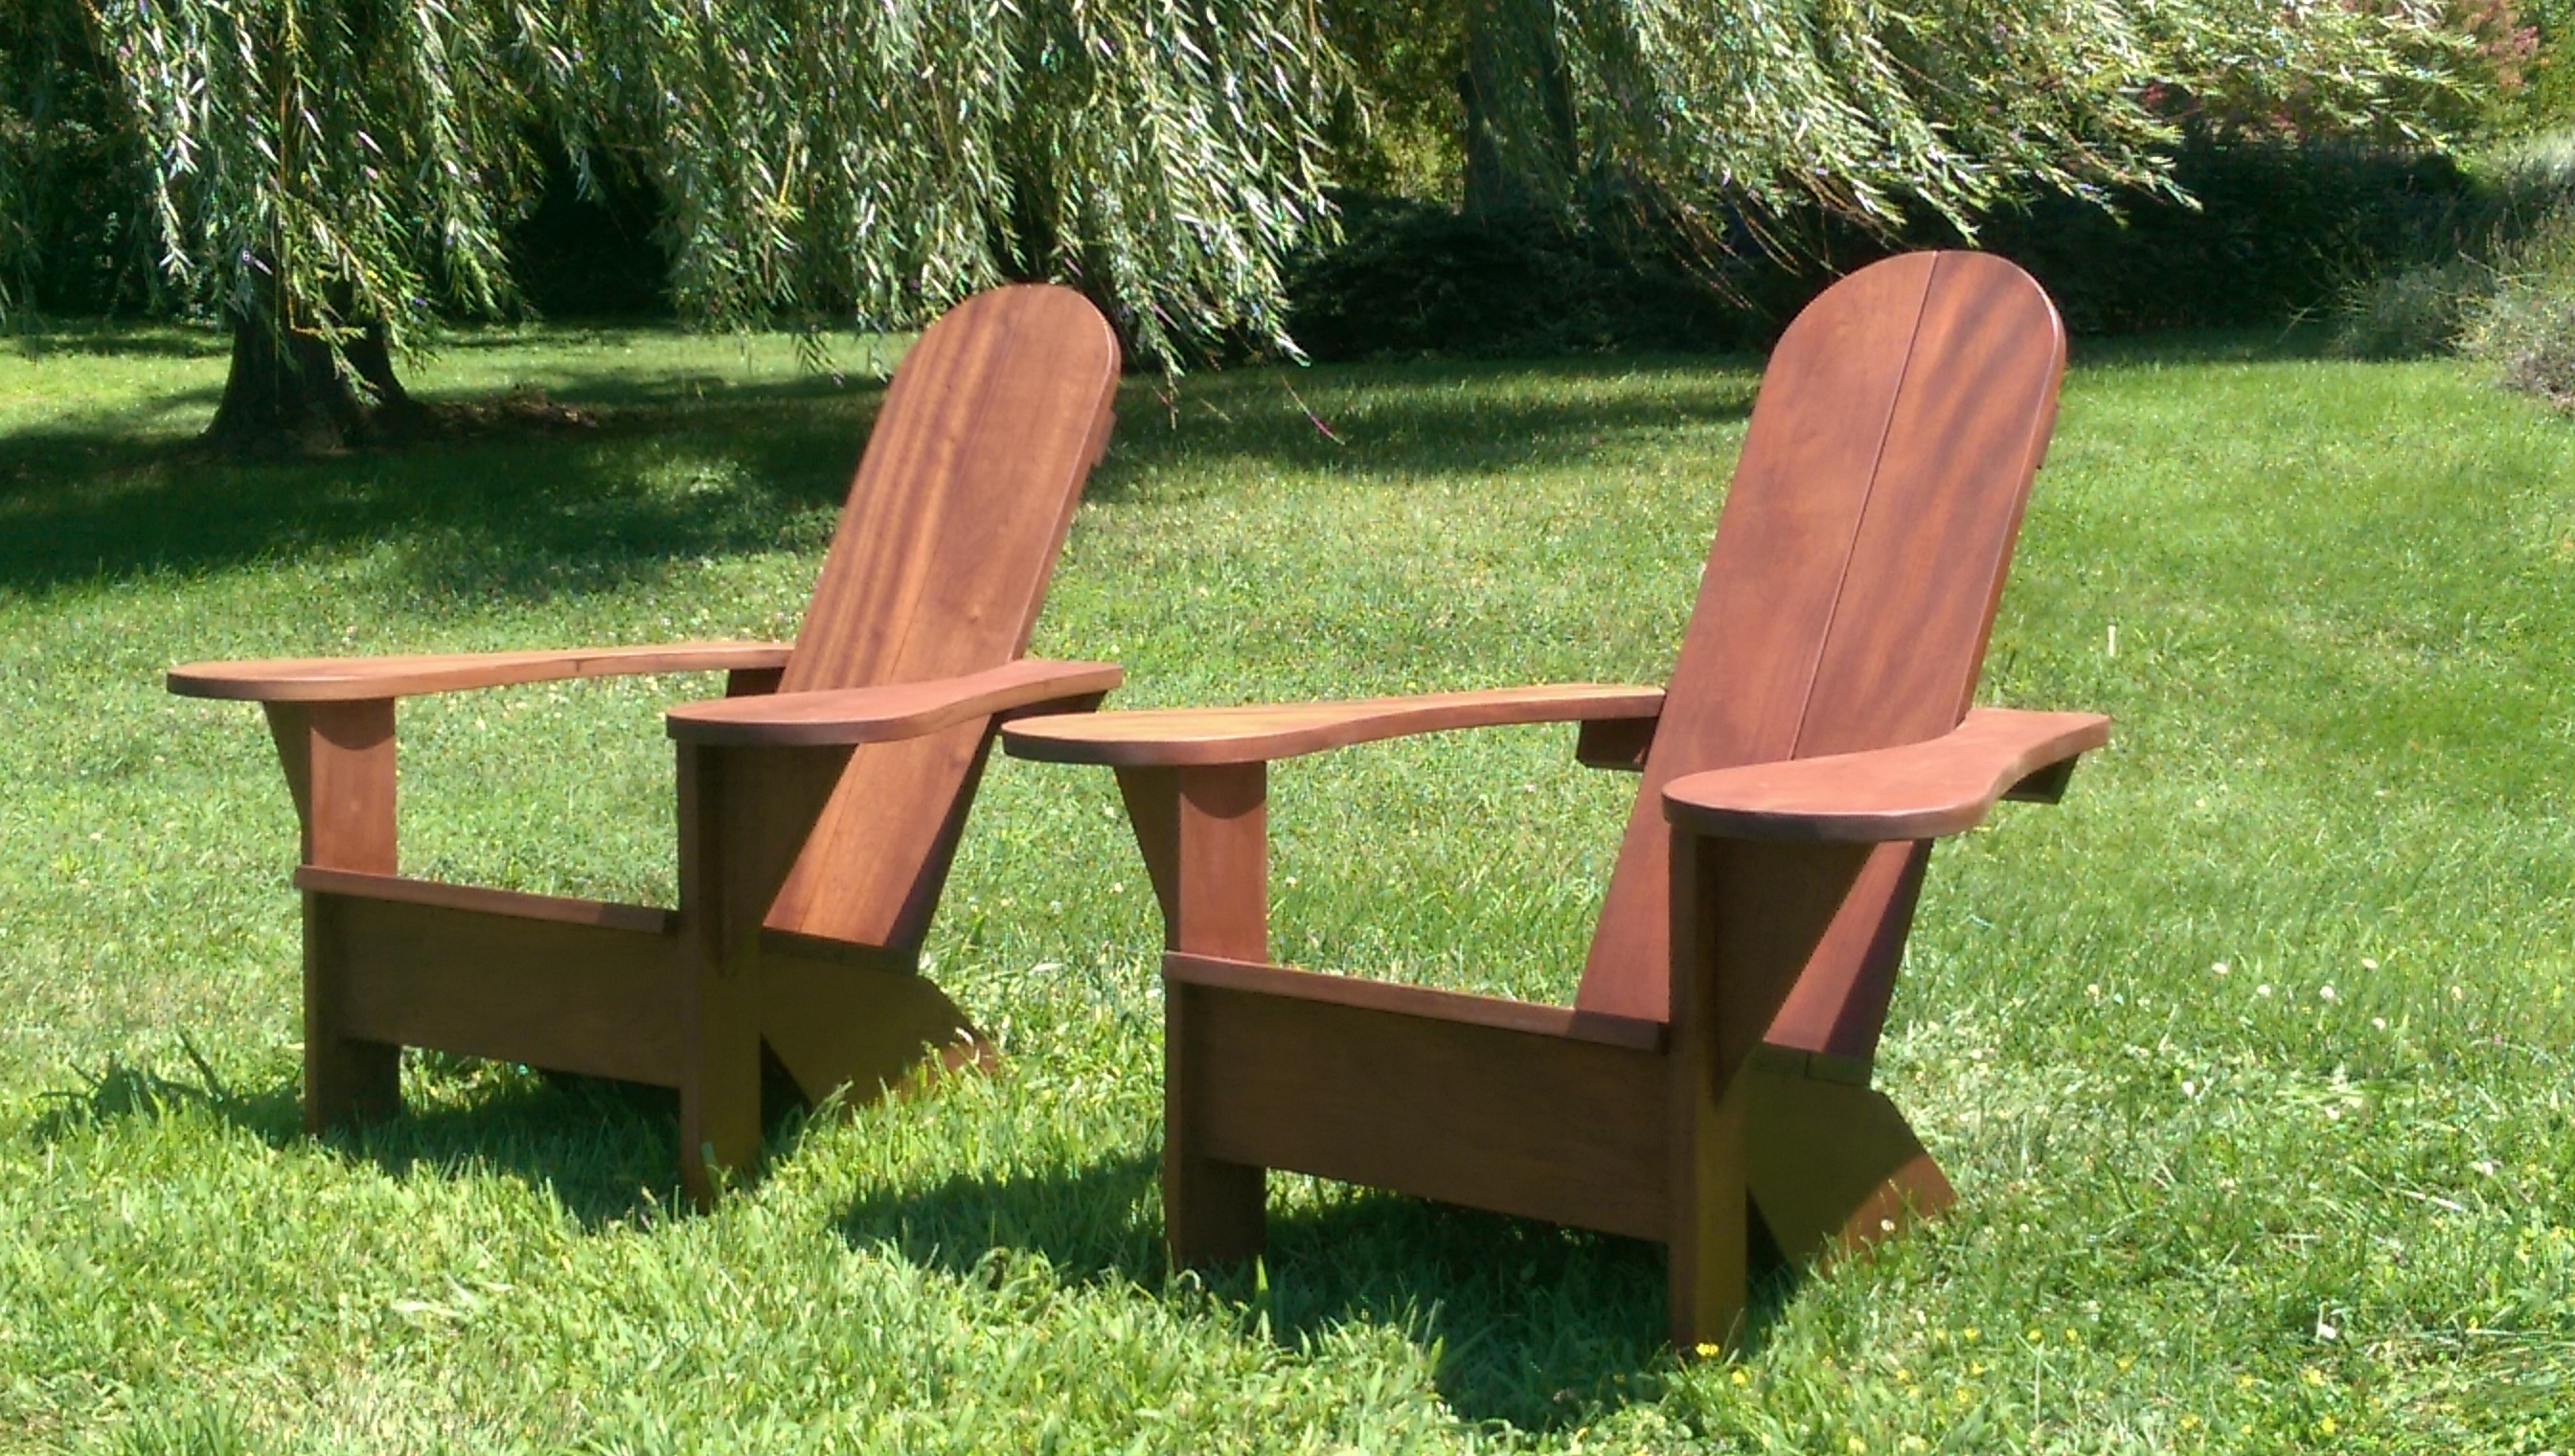 Chesapeake Chairs made from Sapele